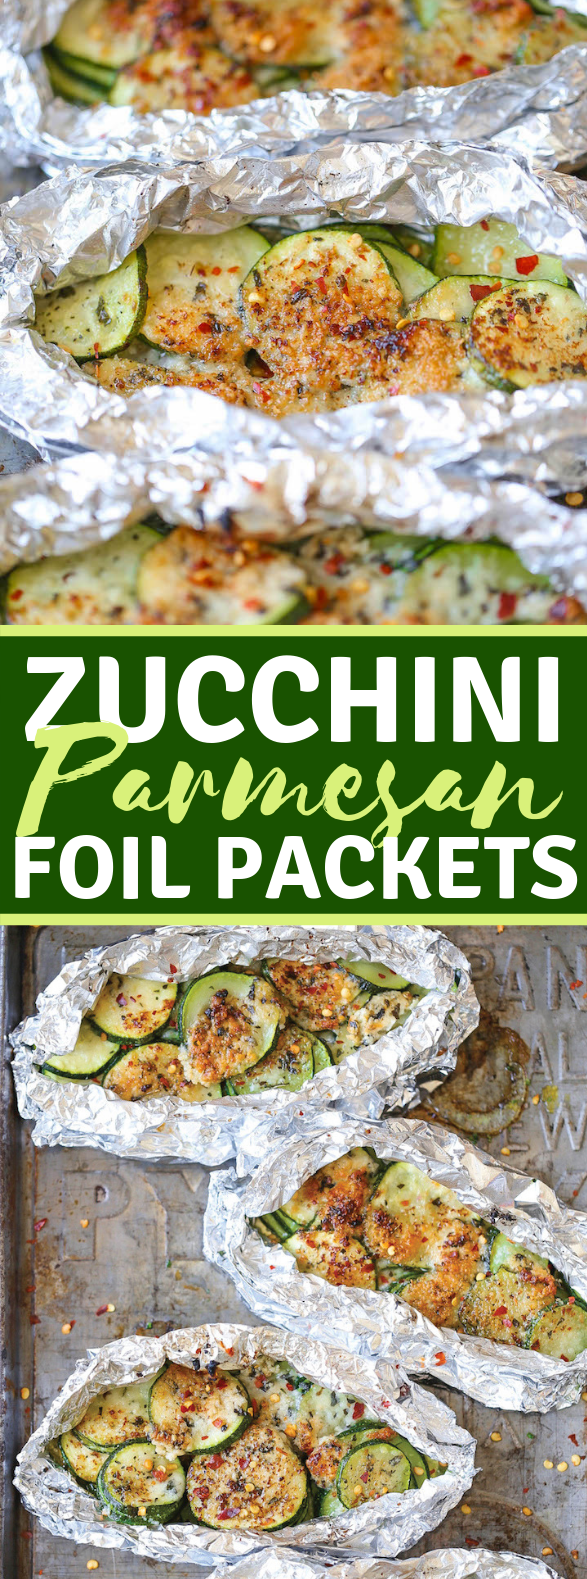 ZUCCHINI PARMESAN FOIL PACKETS #vegetarian #dinner